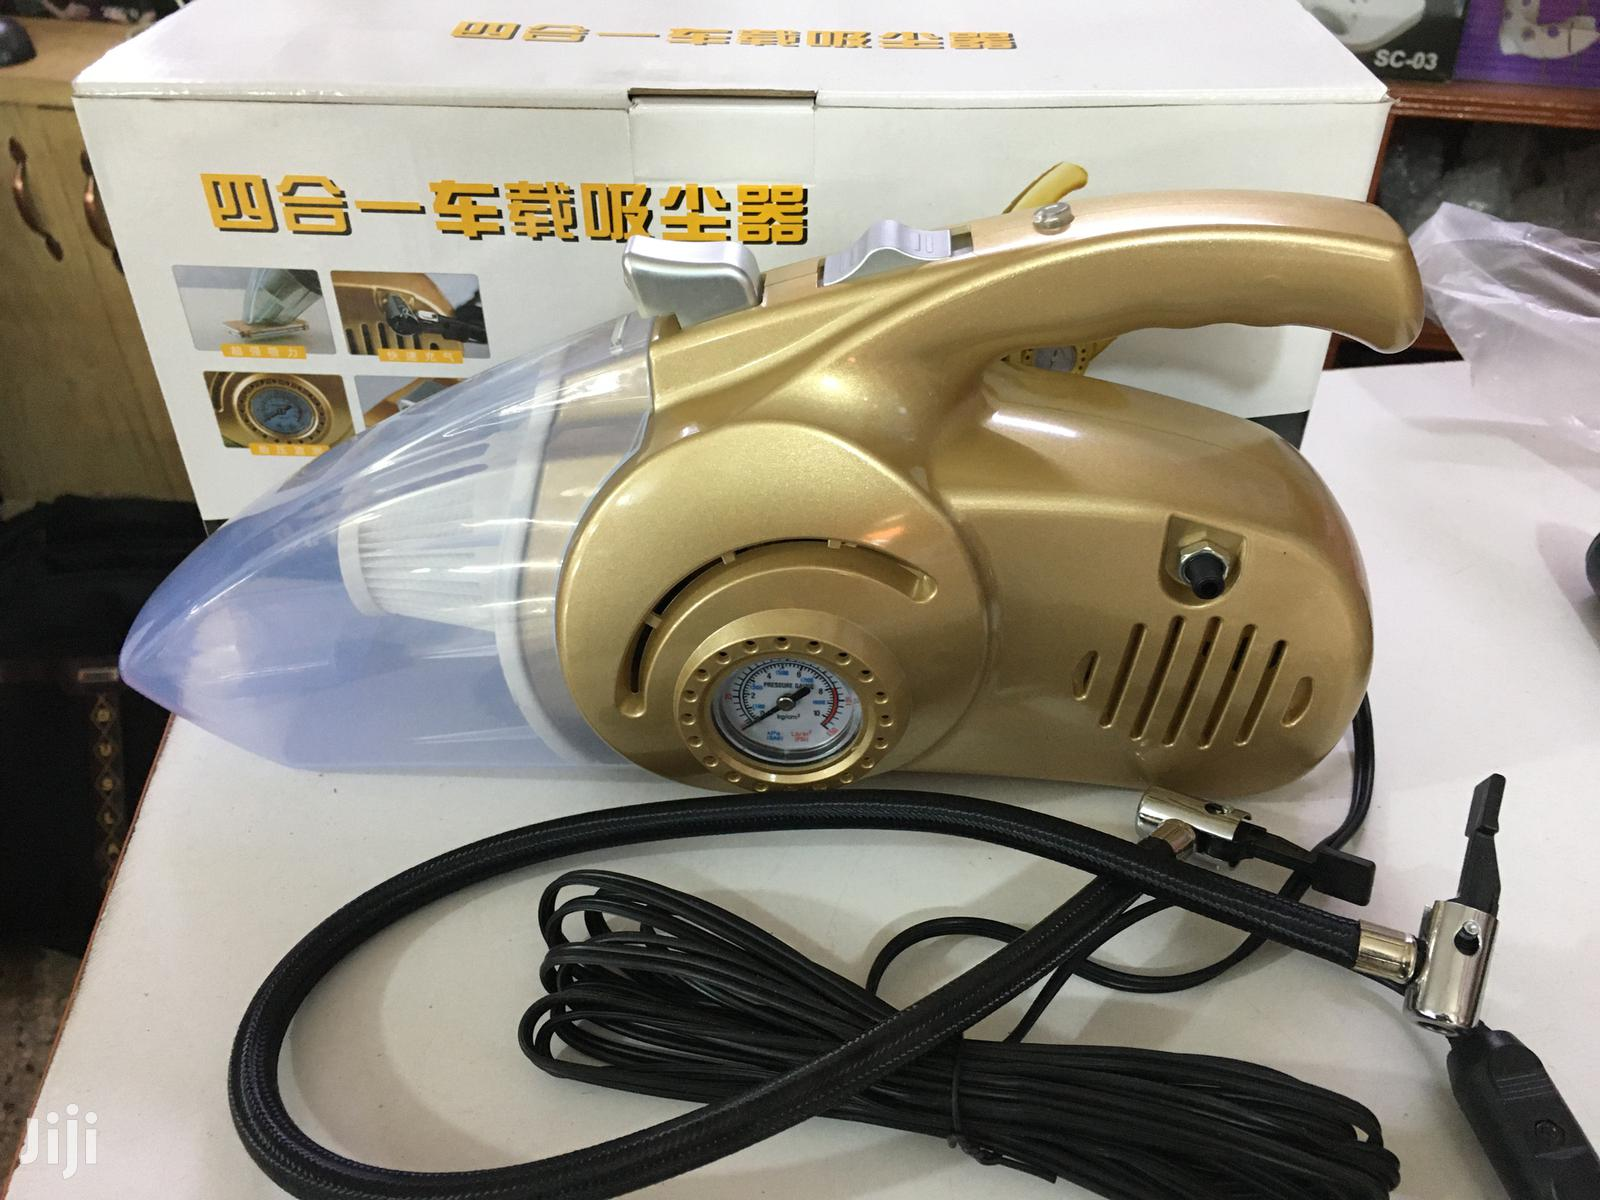 Electric Car Tyre Pump And Vacuum Cleaner | Vehicle Parts & Accessories for sale in Kampala, Central Region, Uganda